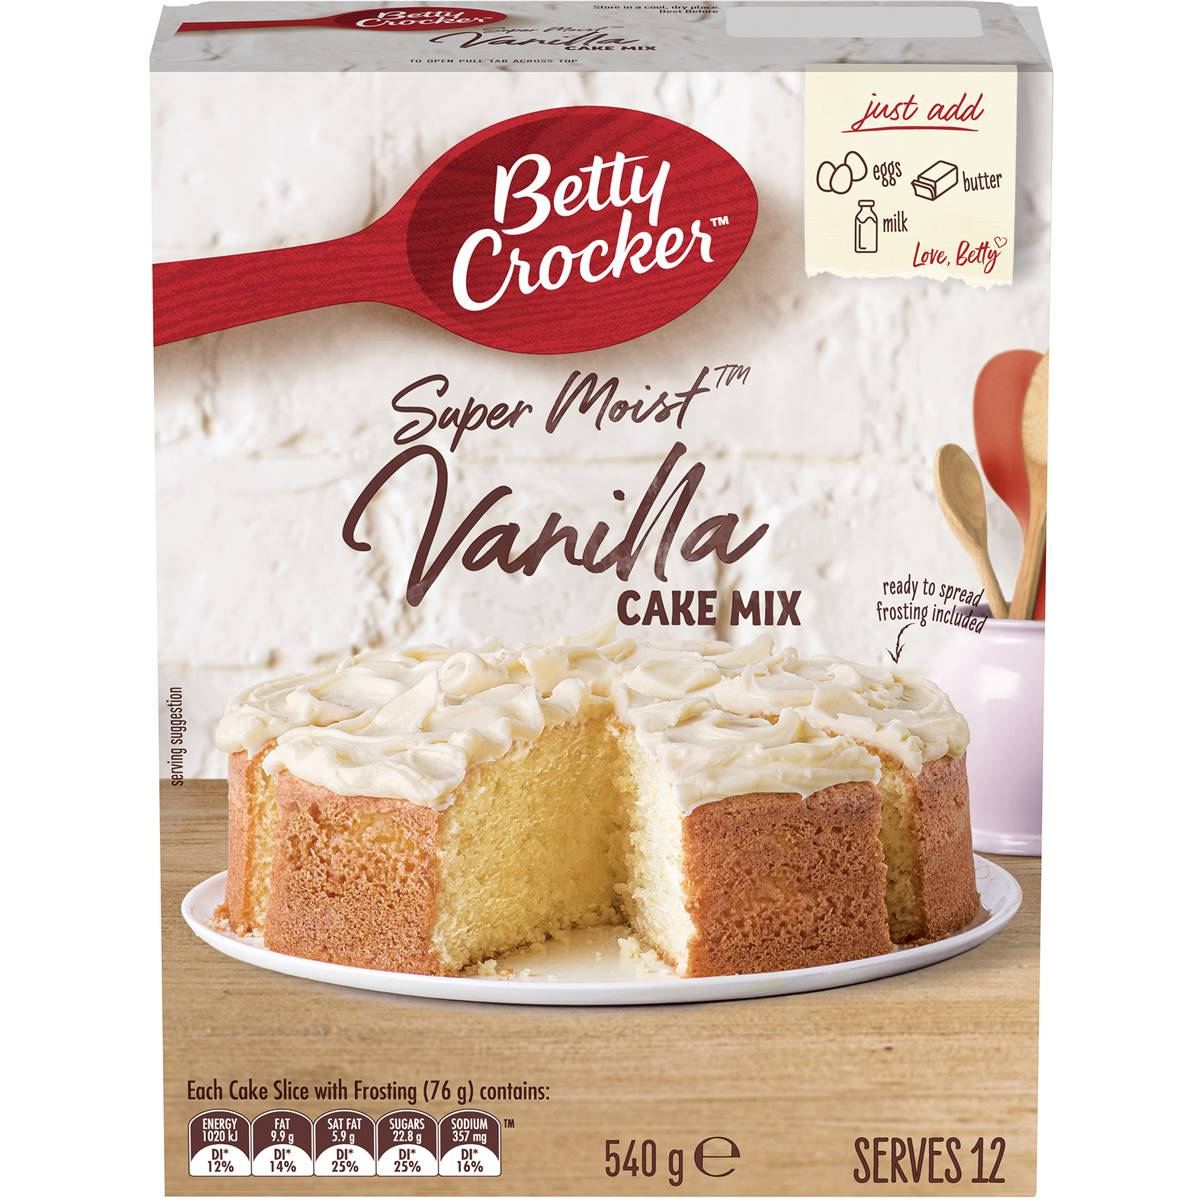 Betty Crocker Lemon Cake Box Directions